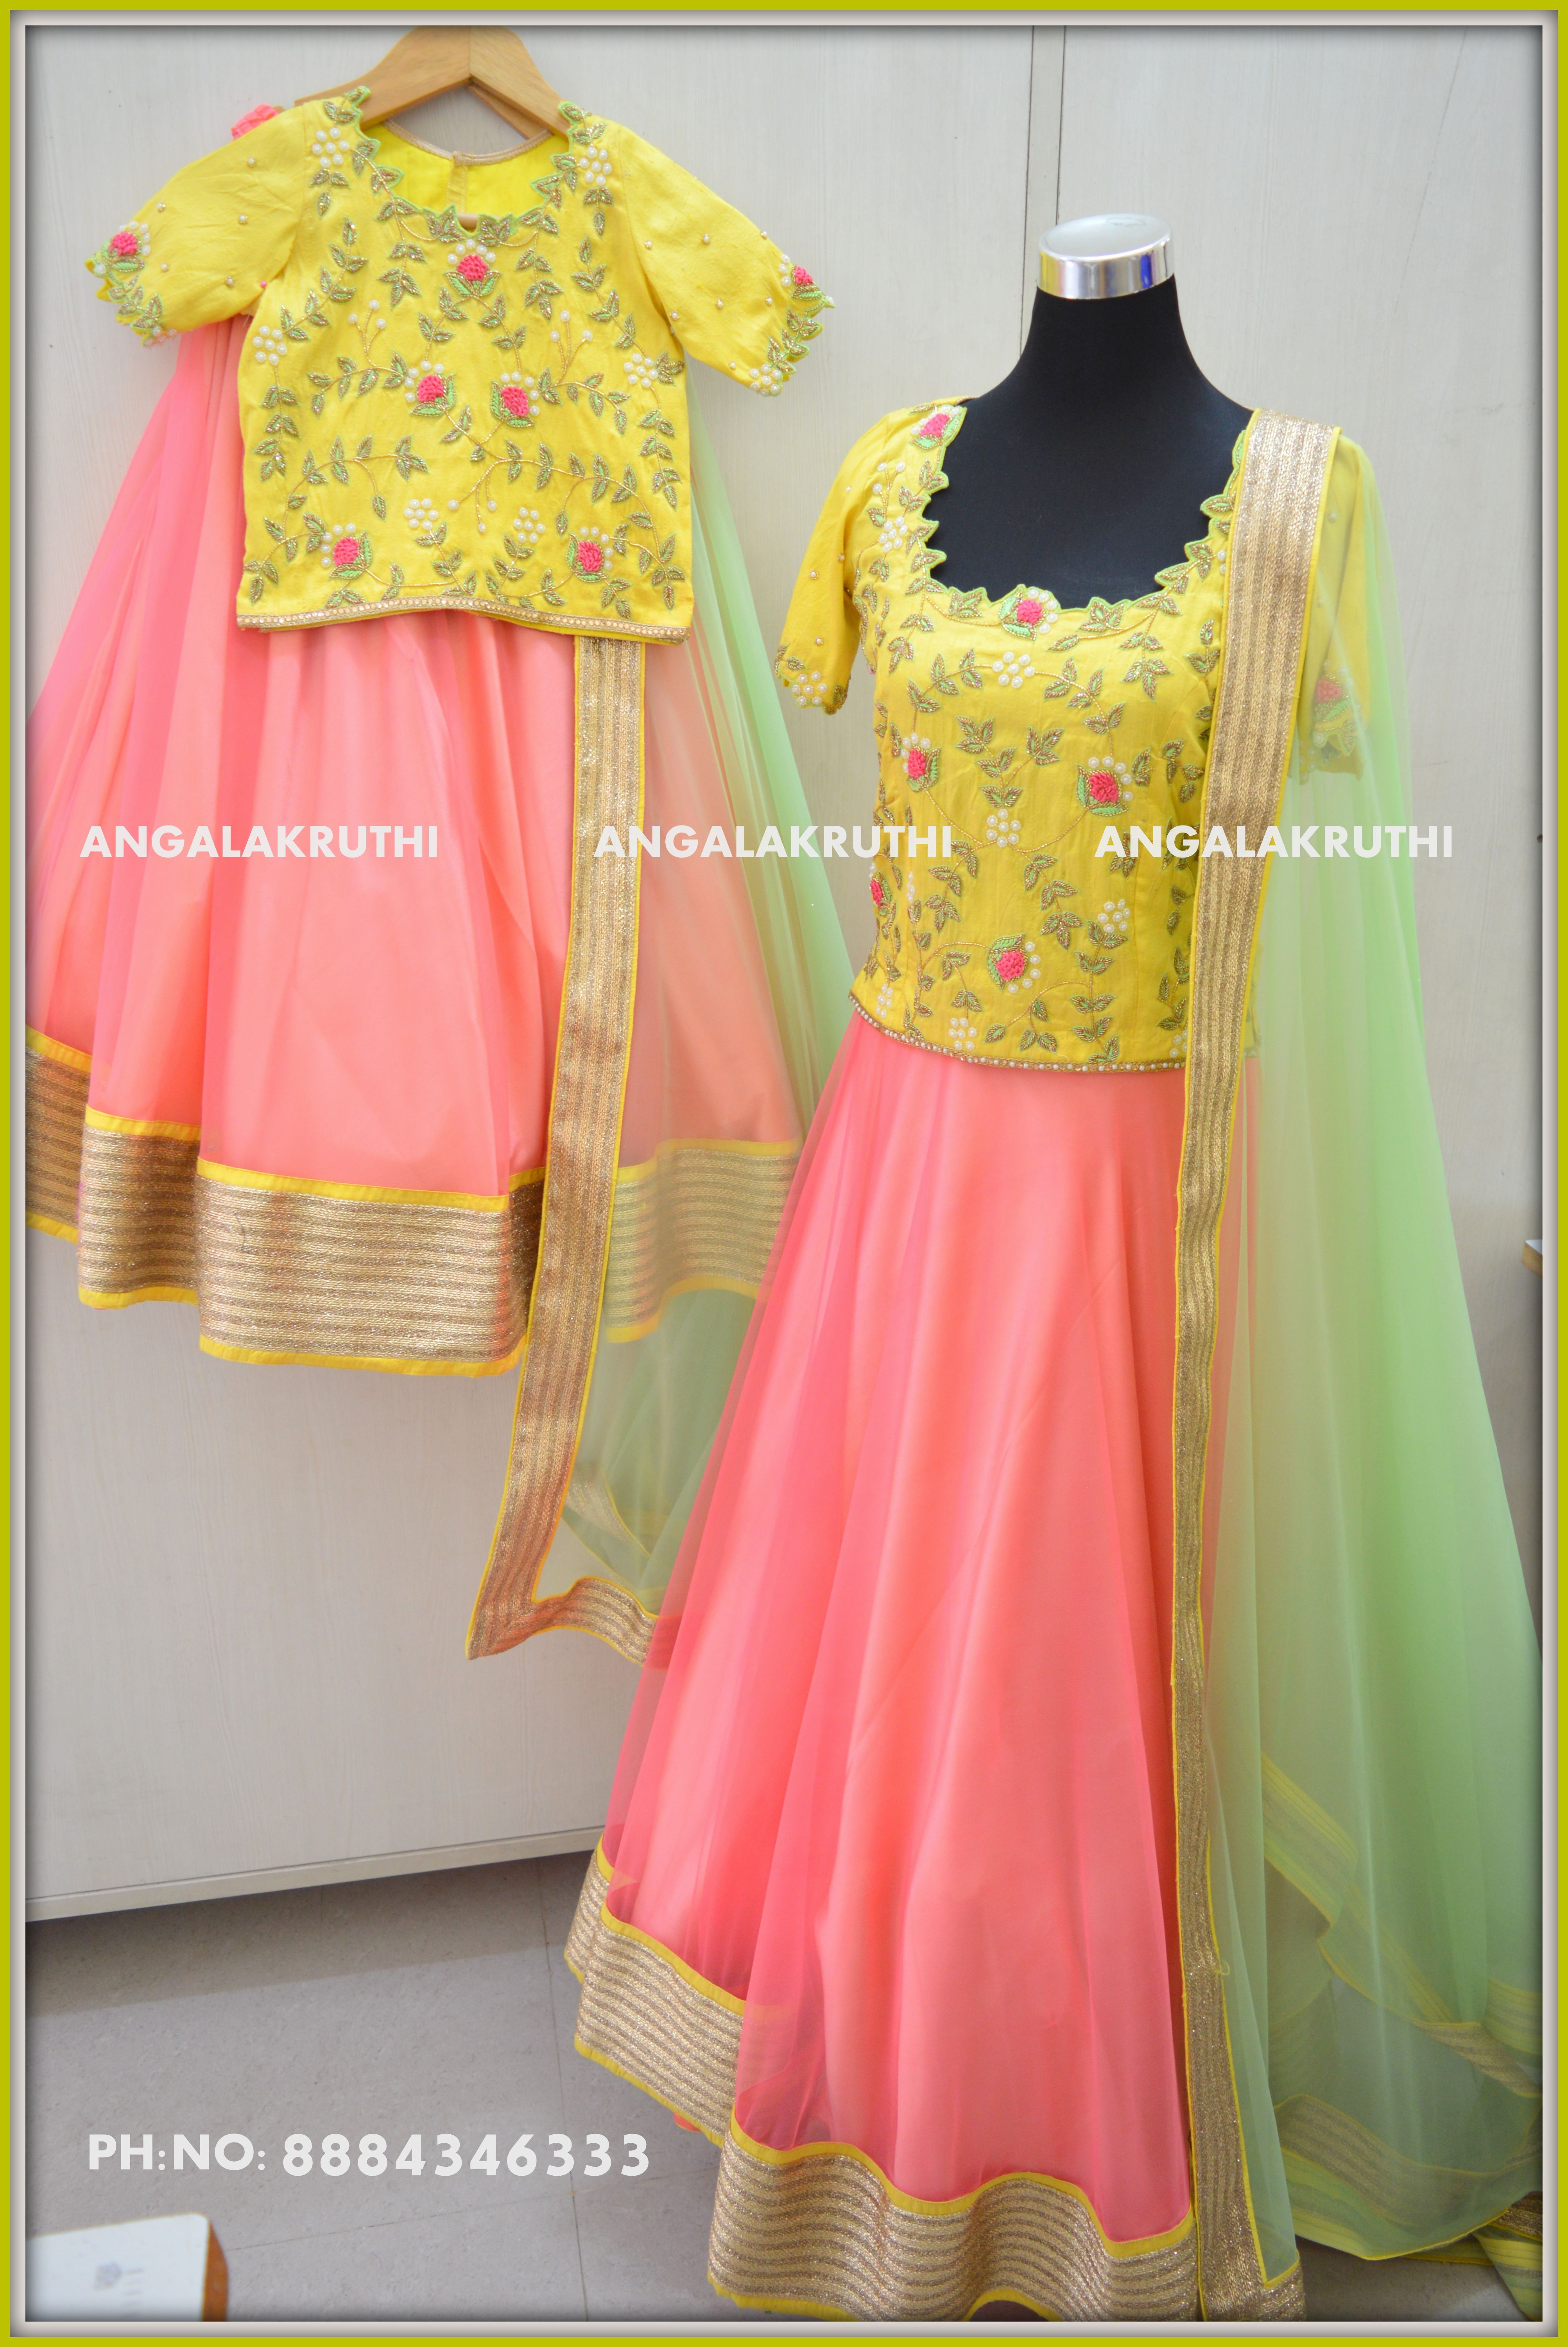 91fbb2e293 Mother and daughter matching dress designs by Angalakruthi boutique  bangalore mom n me dress designs custom mom and me designs